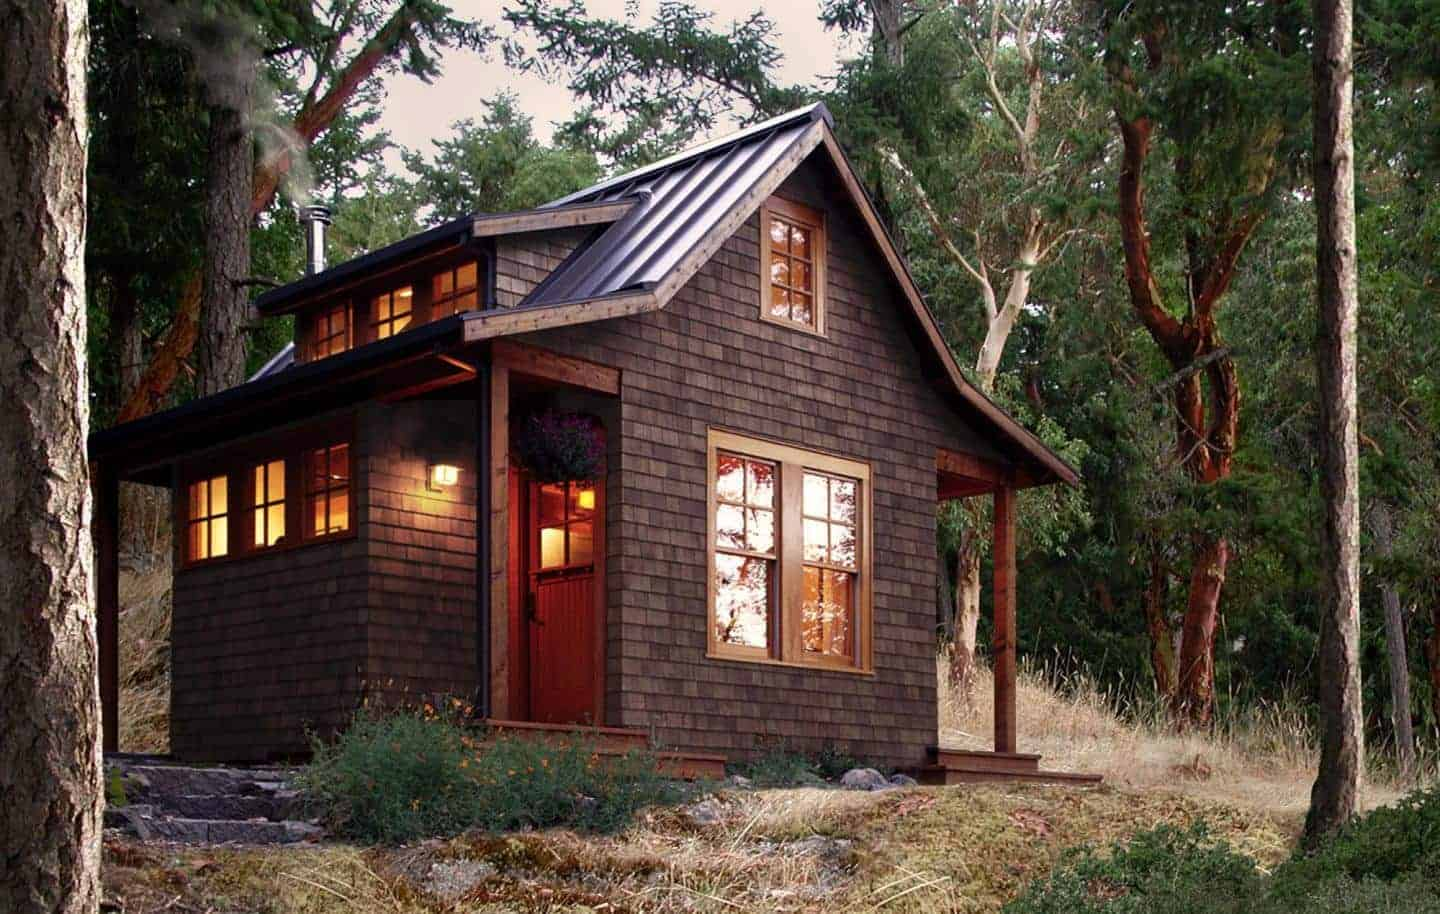 Tiny Victorian House Plans Small Cabins Tiny Houses Homes: San Juan Islands Offer A Remote Wilderness Haven For Tiny